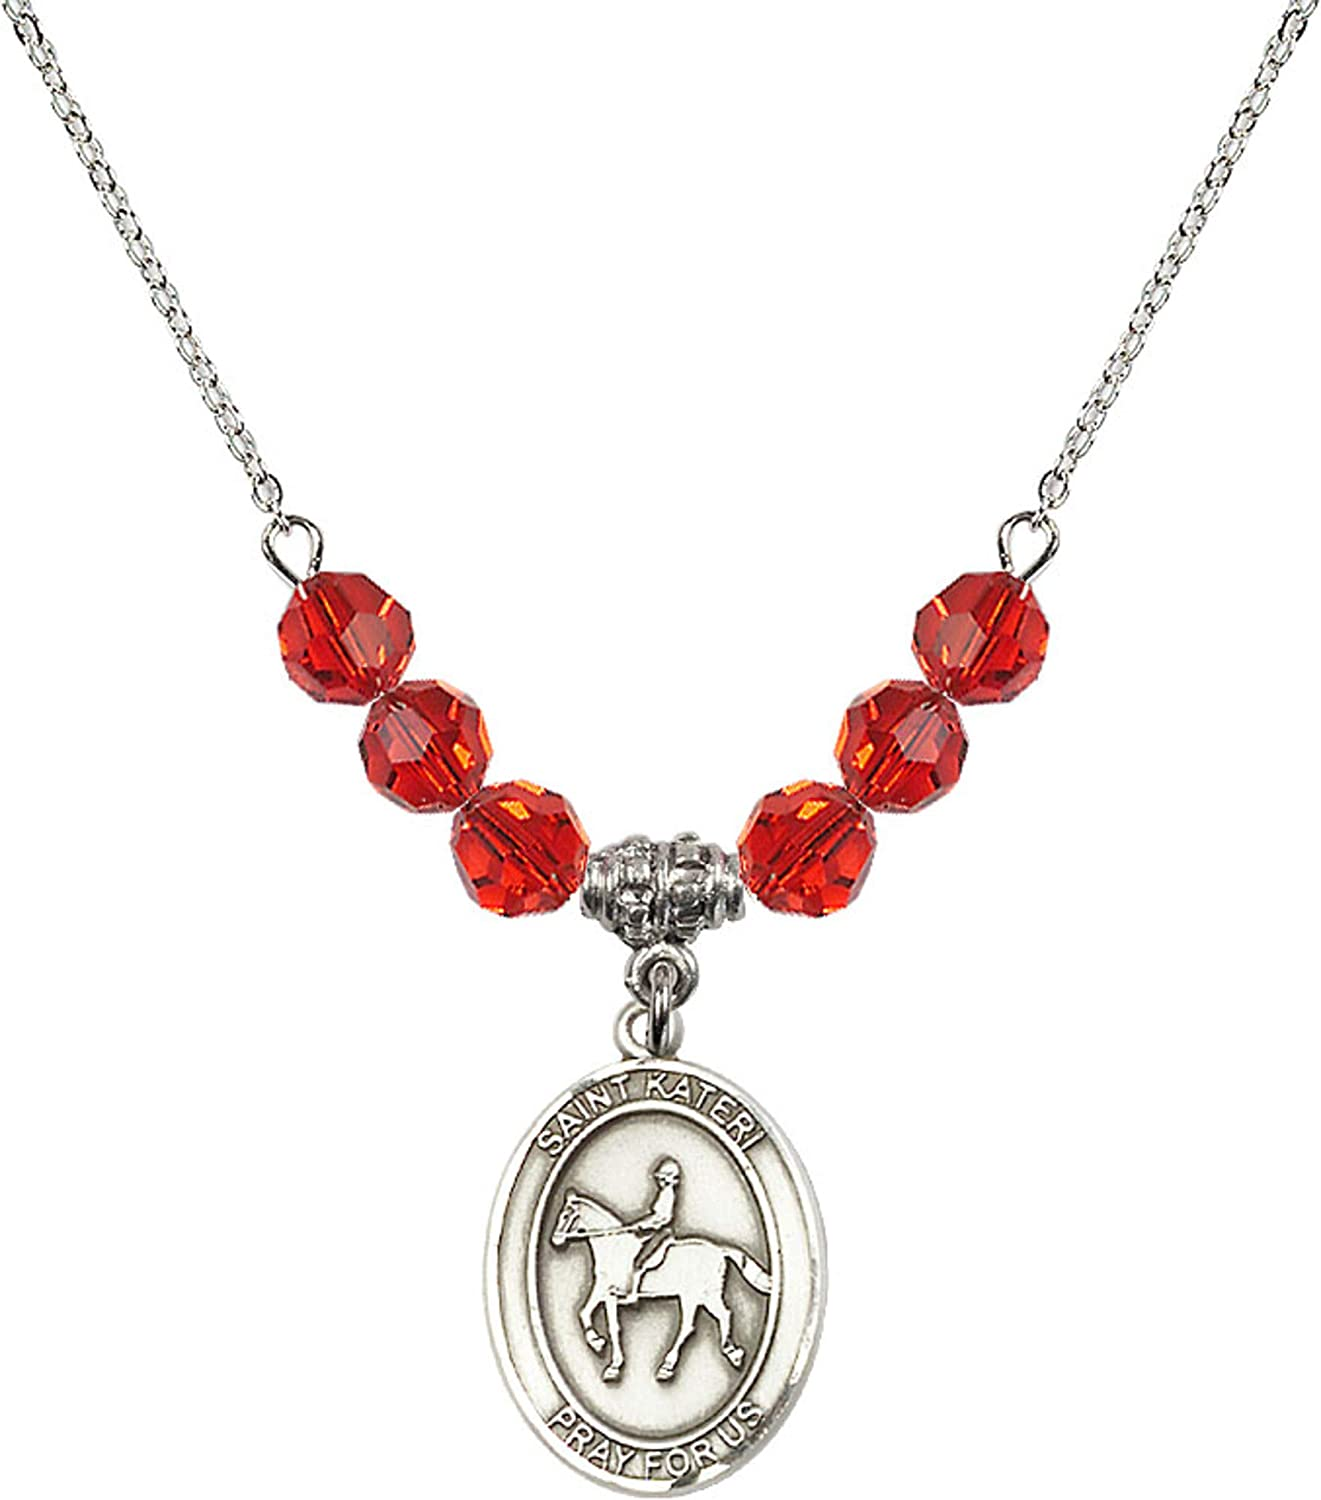 Bonyak Jewelry 18 Inch Rhodium Plated Necklace w// 6mm Red July Birth Month Stone Beads and Saint Kateri//Equestrian Charm